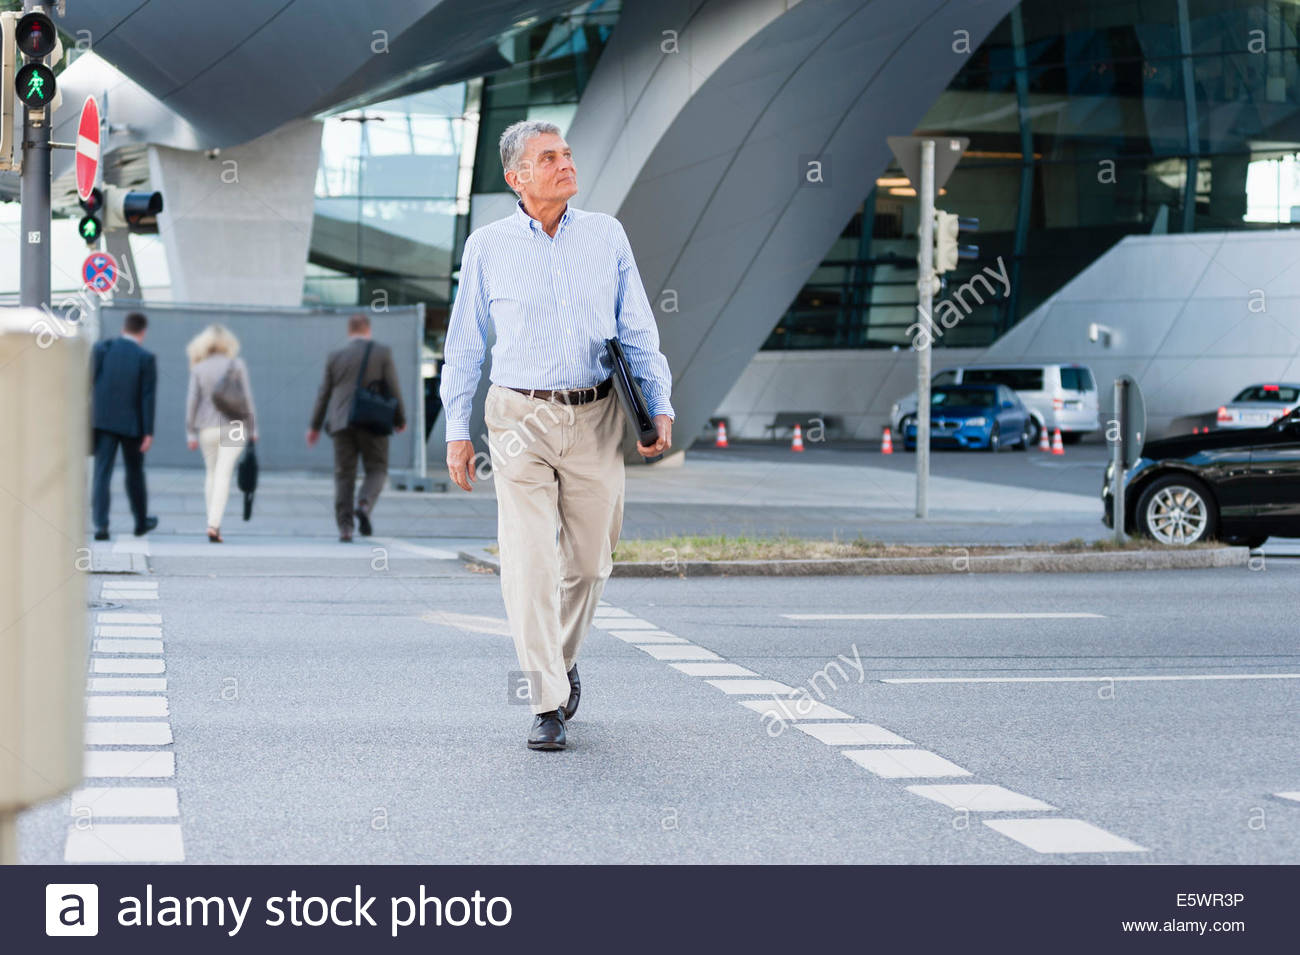 Senior adult businessman walking down street - Stock Image